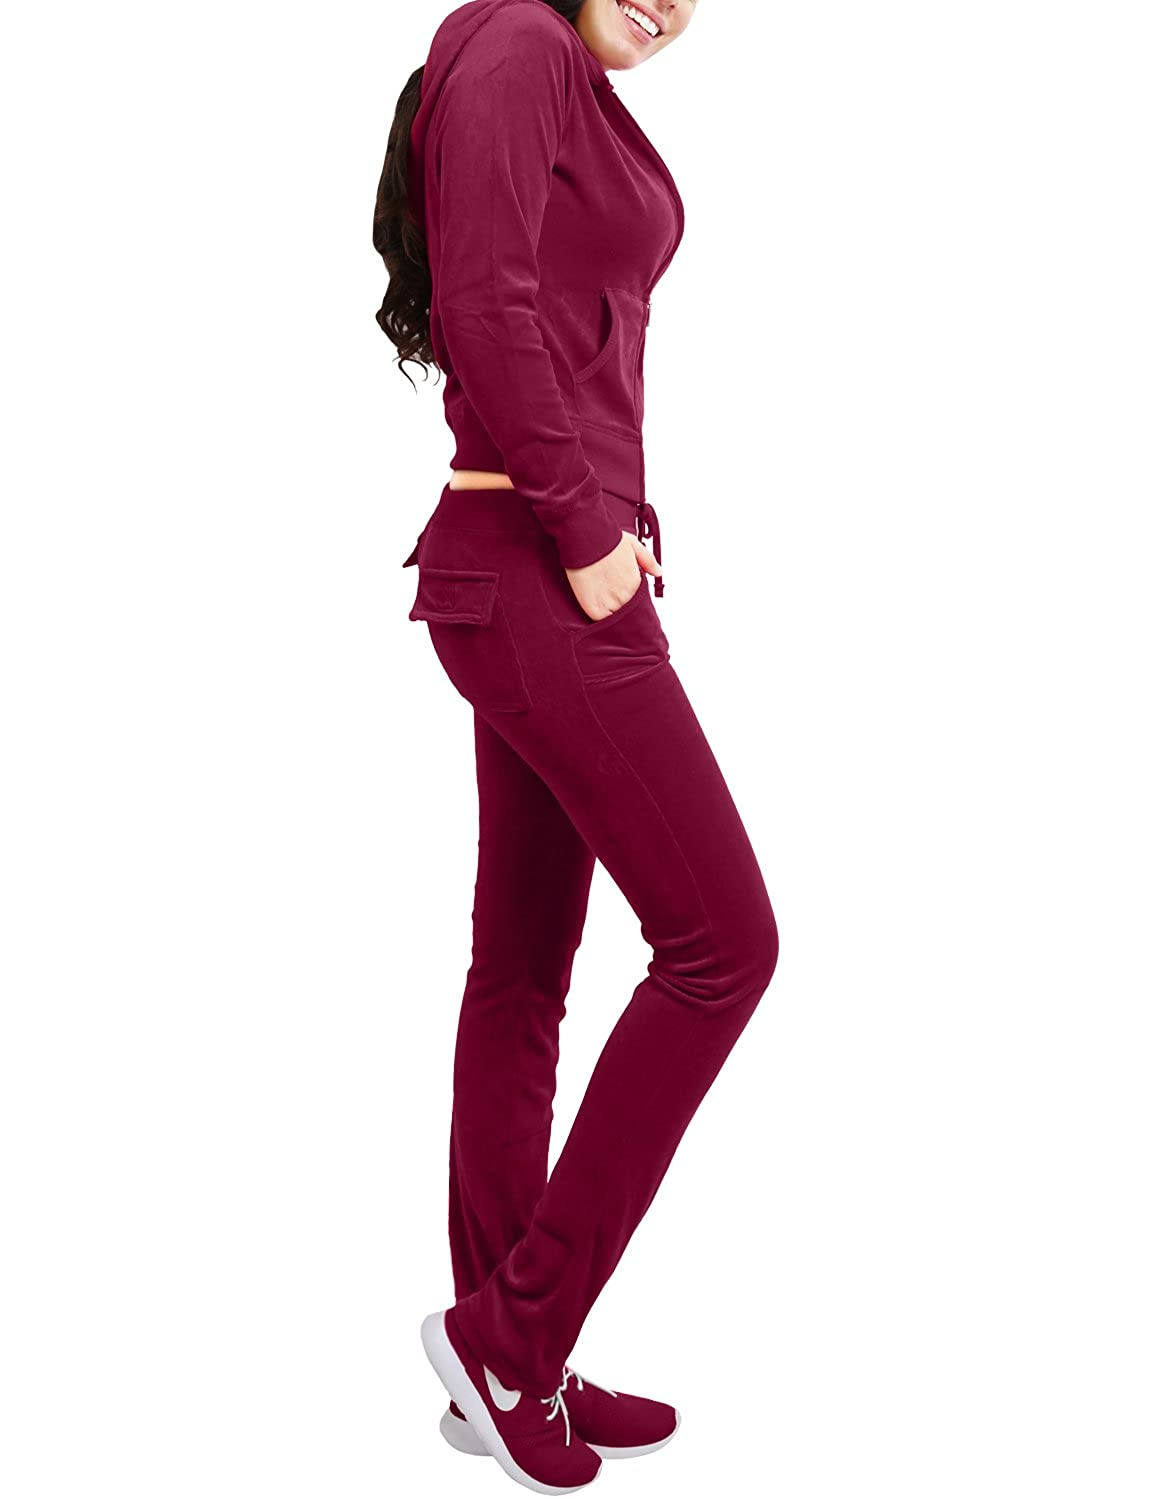 NE PEOPLE Womens Casual Basic Velour 2 Pieces Zip Up Hoodie & Sweatpants Tracksuit 2 Piece Set S-3XL NEWWTS03-parent